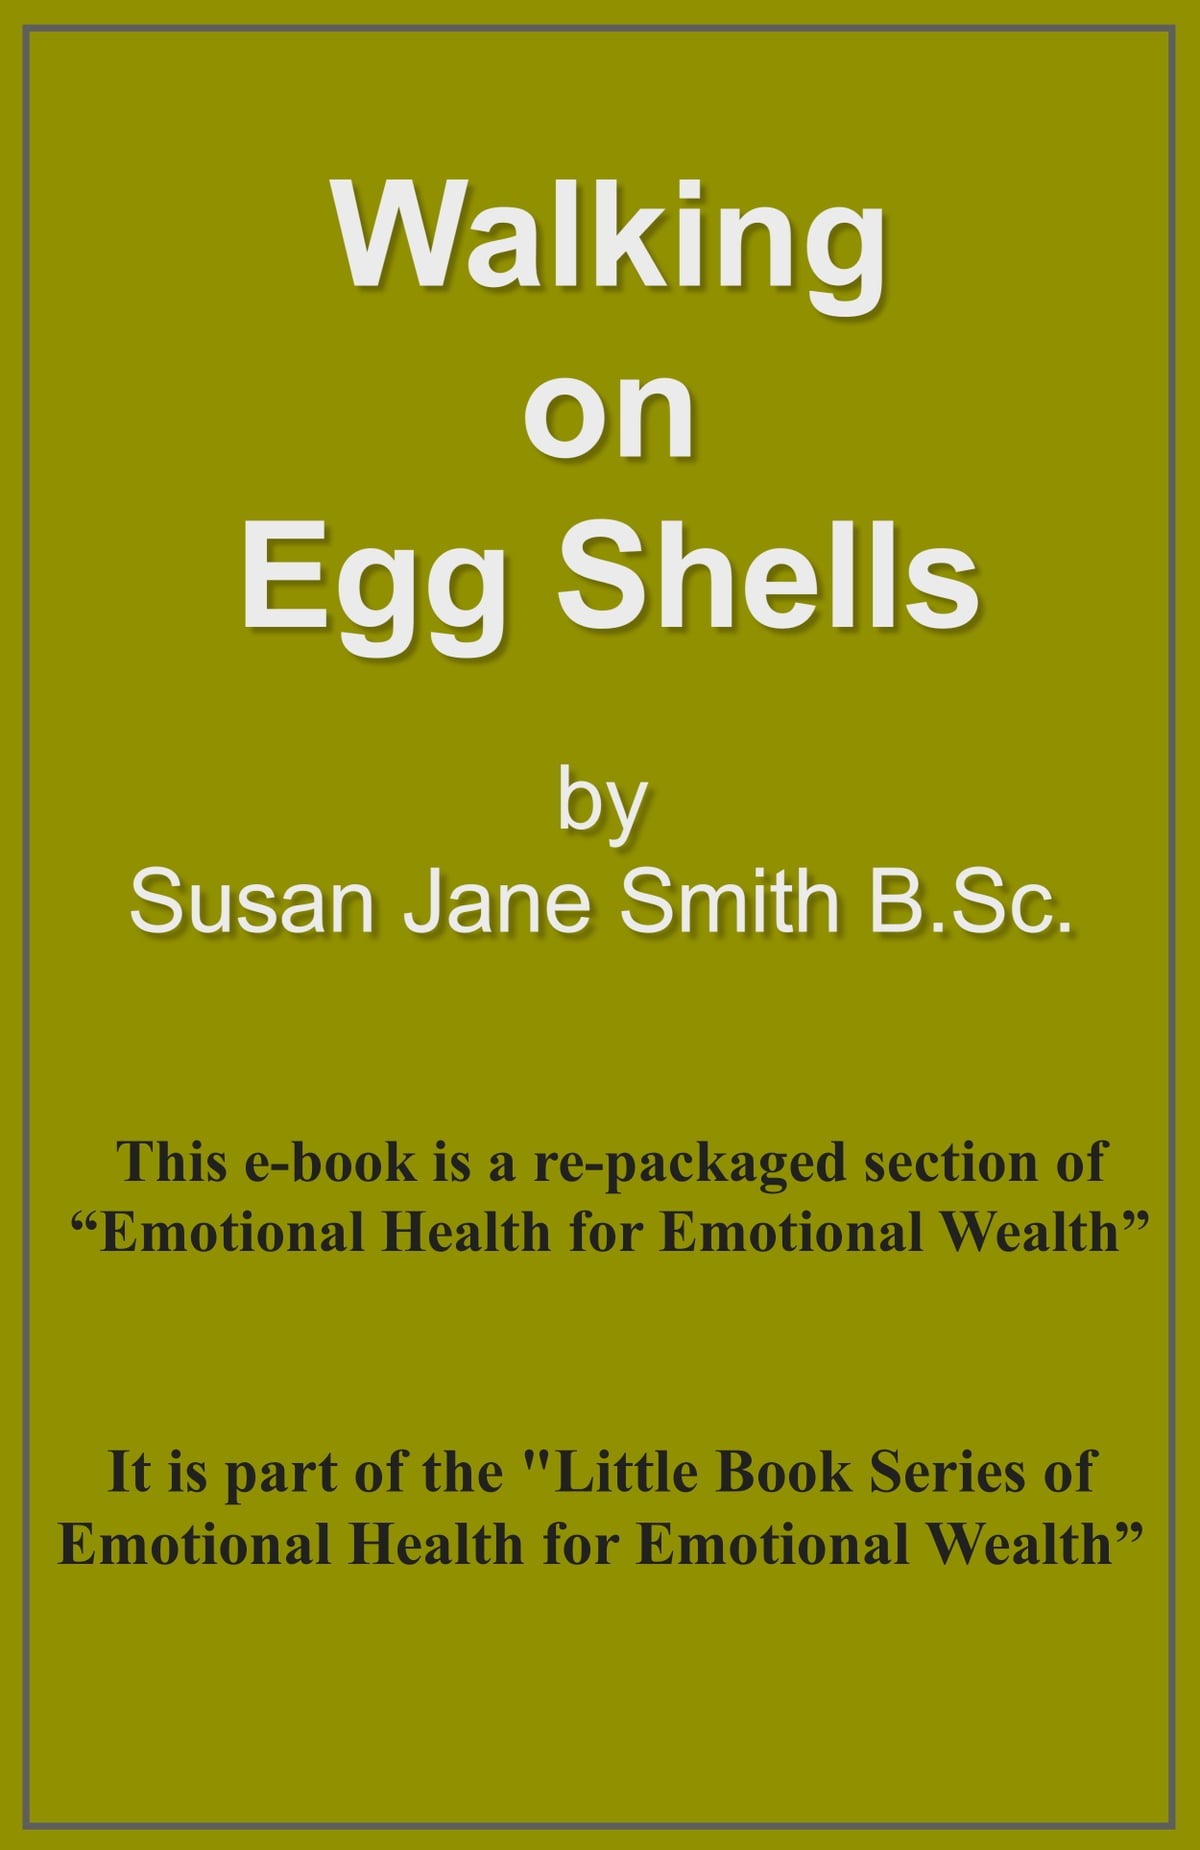 Walking on Eggshells eBook by Susan Jane Smith - 9781301039289 | Rakuten  Kobo